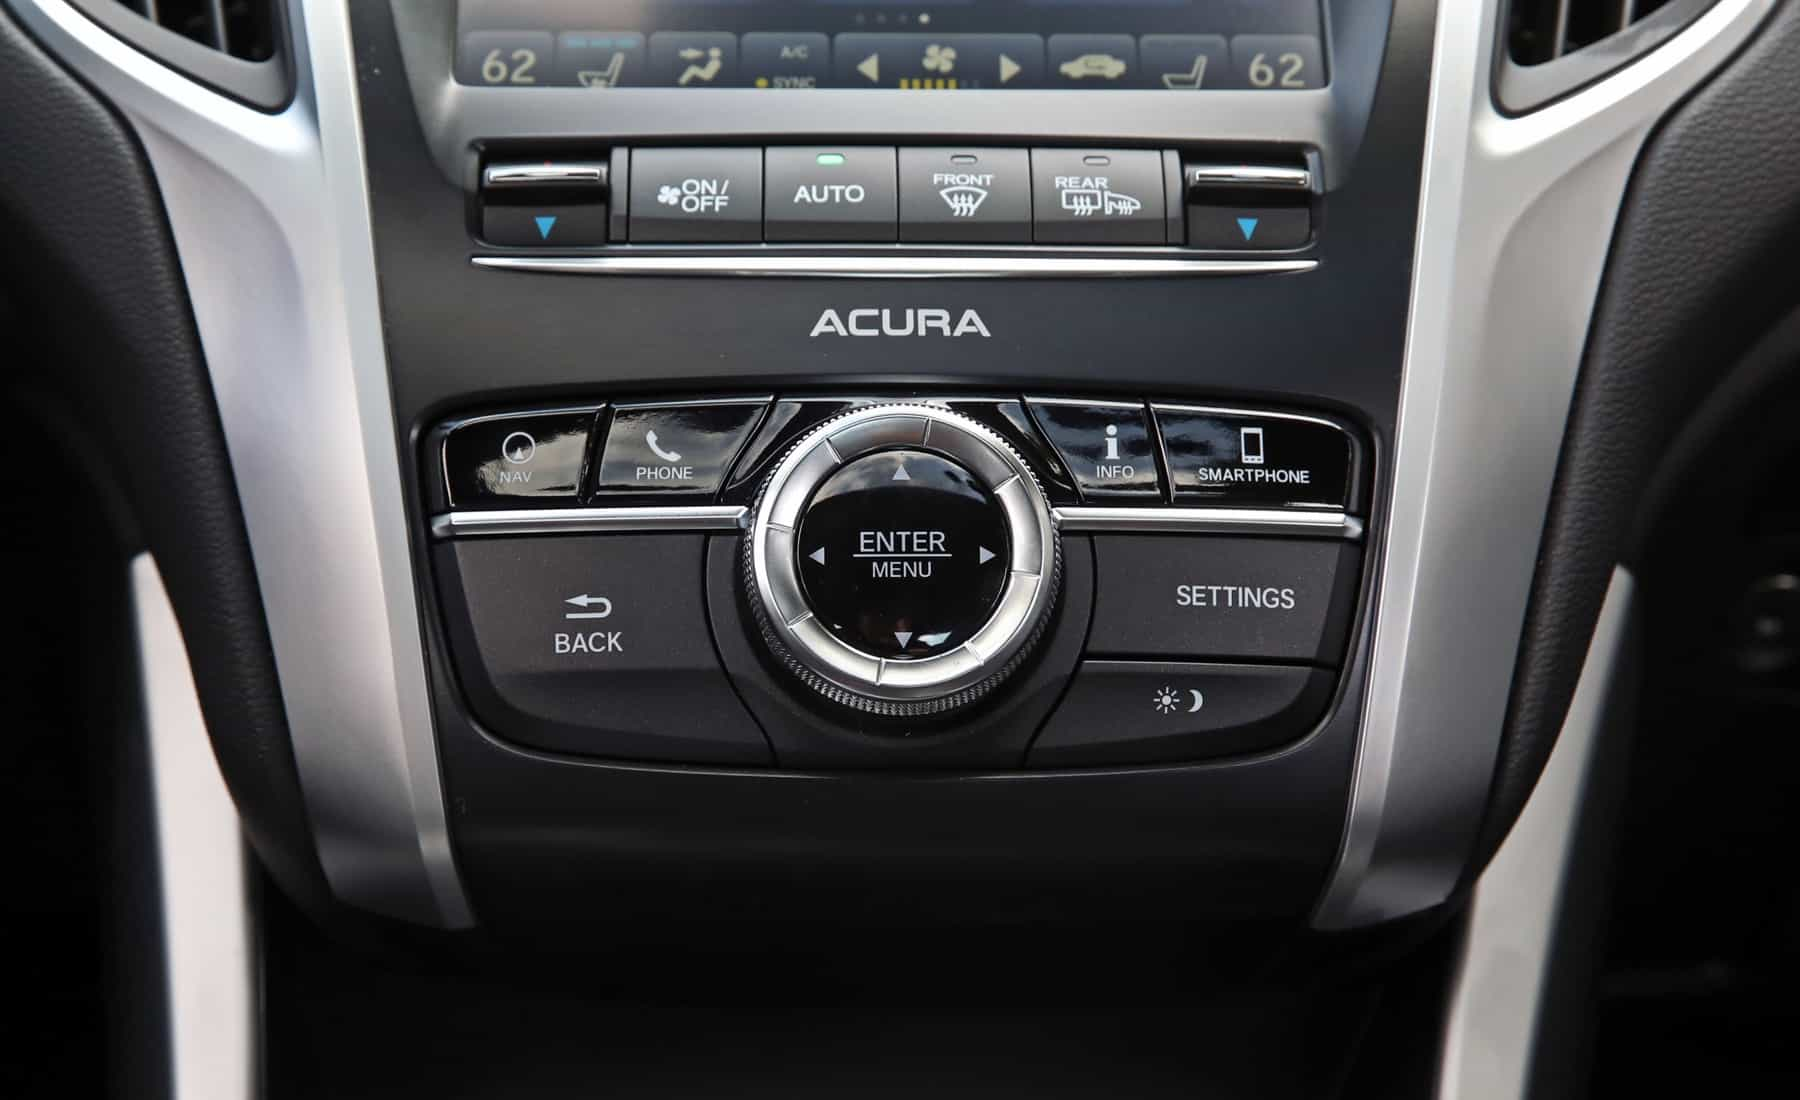 2018 Acura TLX Interior View Climate Control (Photo 31 of 46)